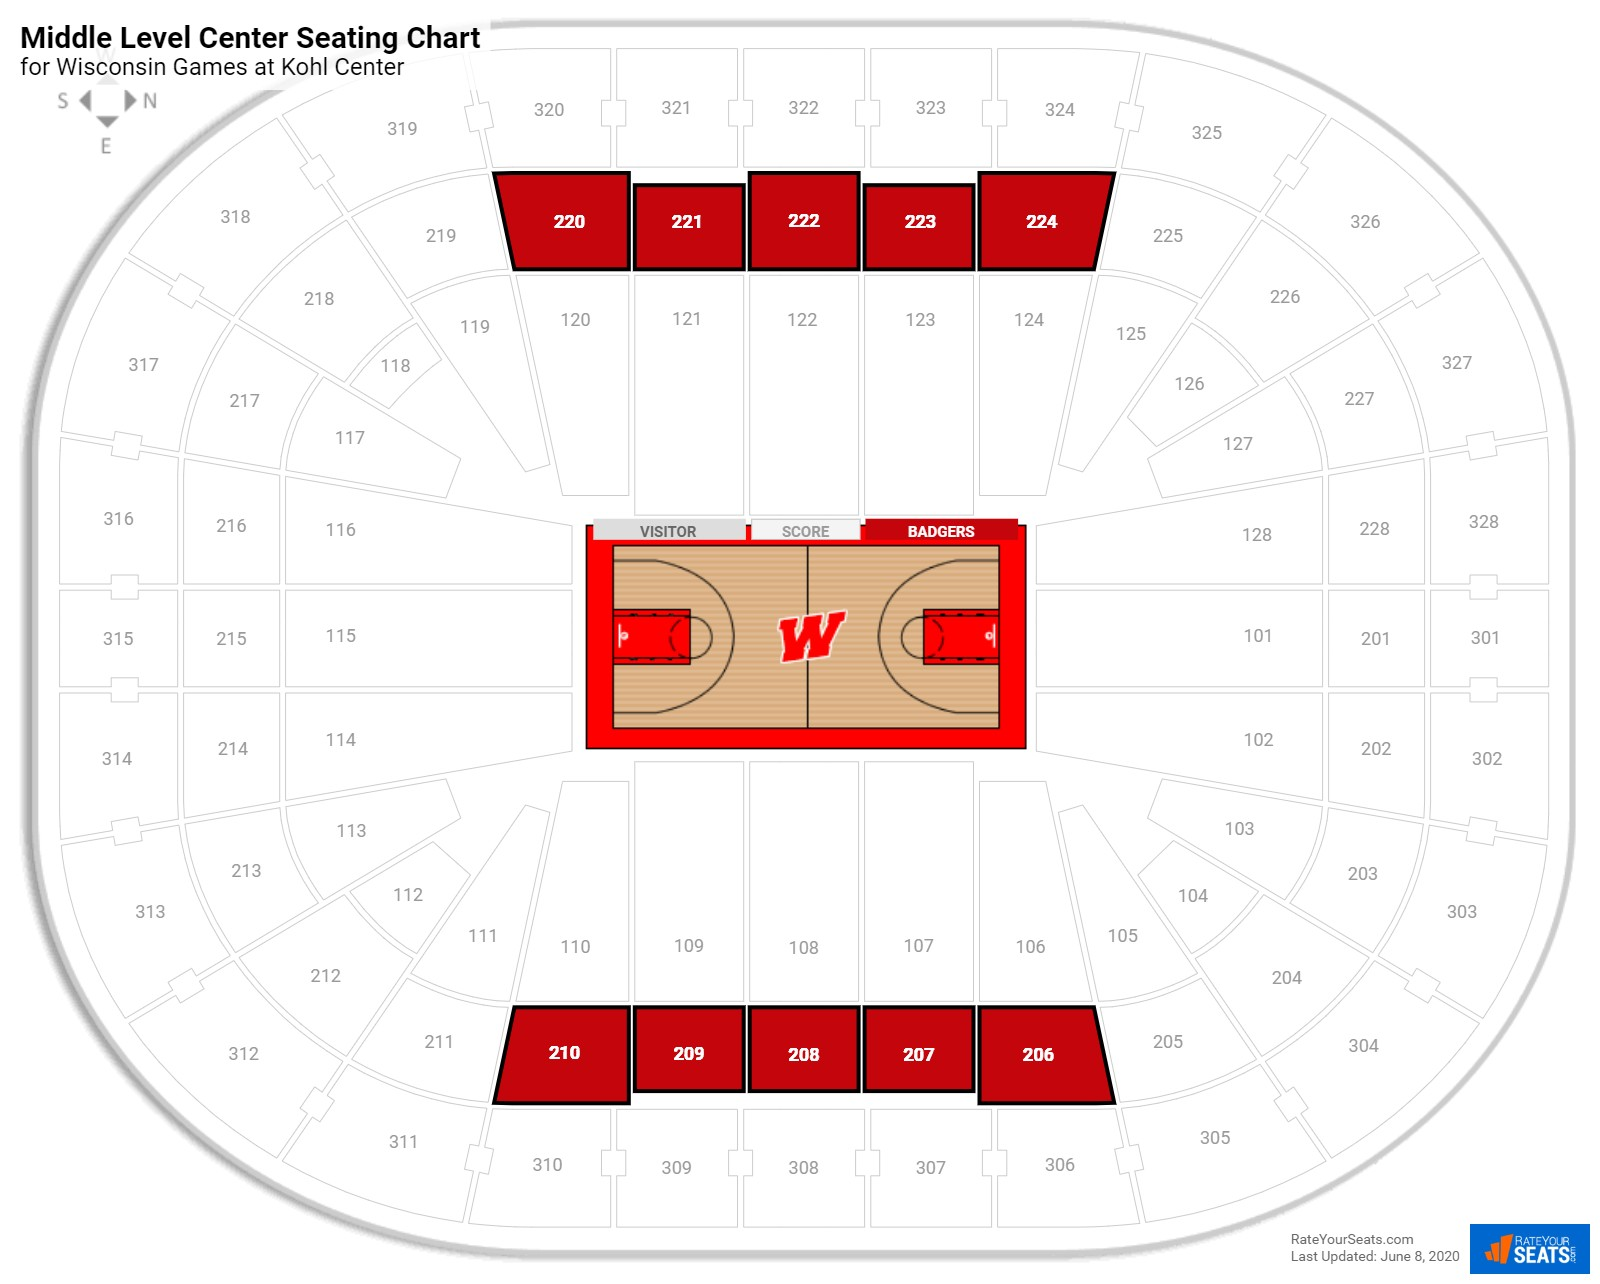 Kohl Center Middle Level Seating Chart